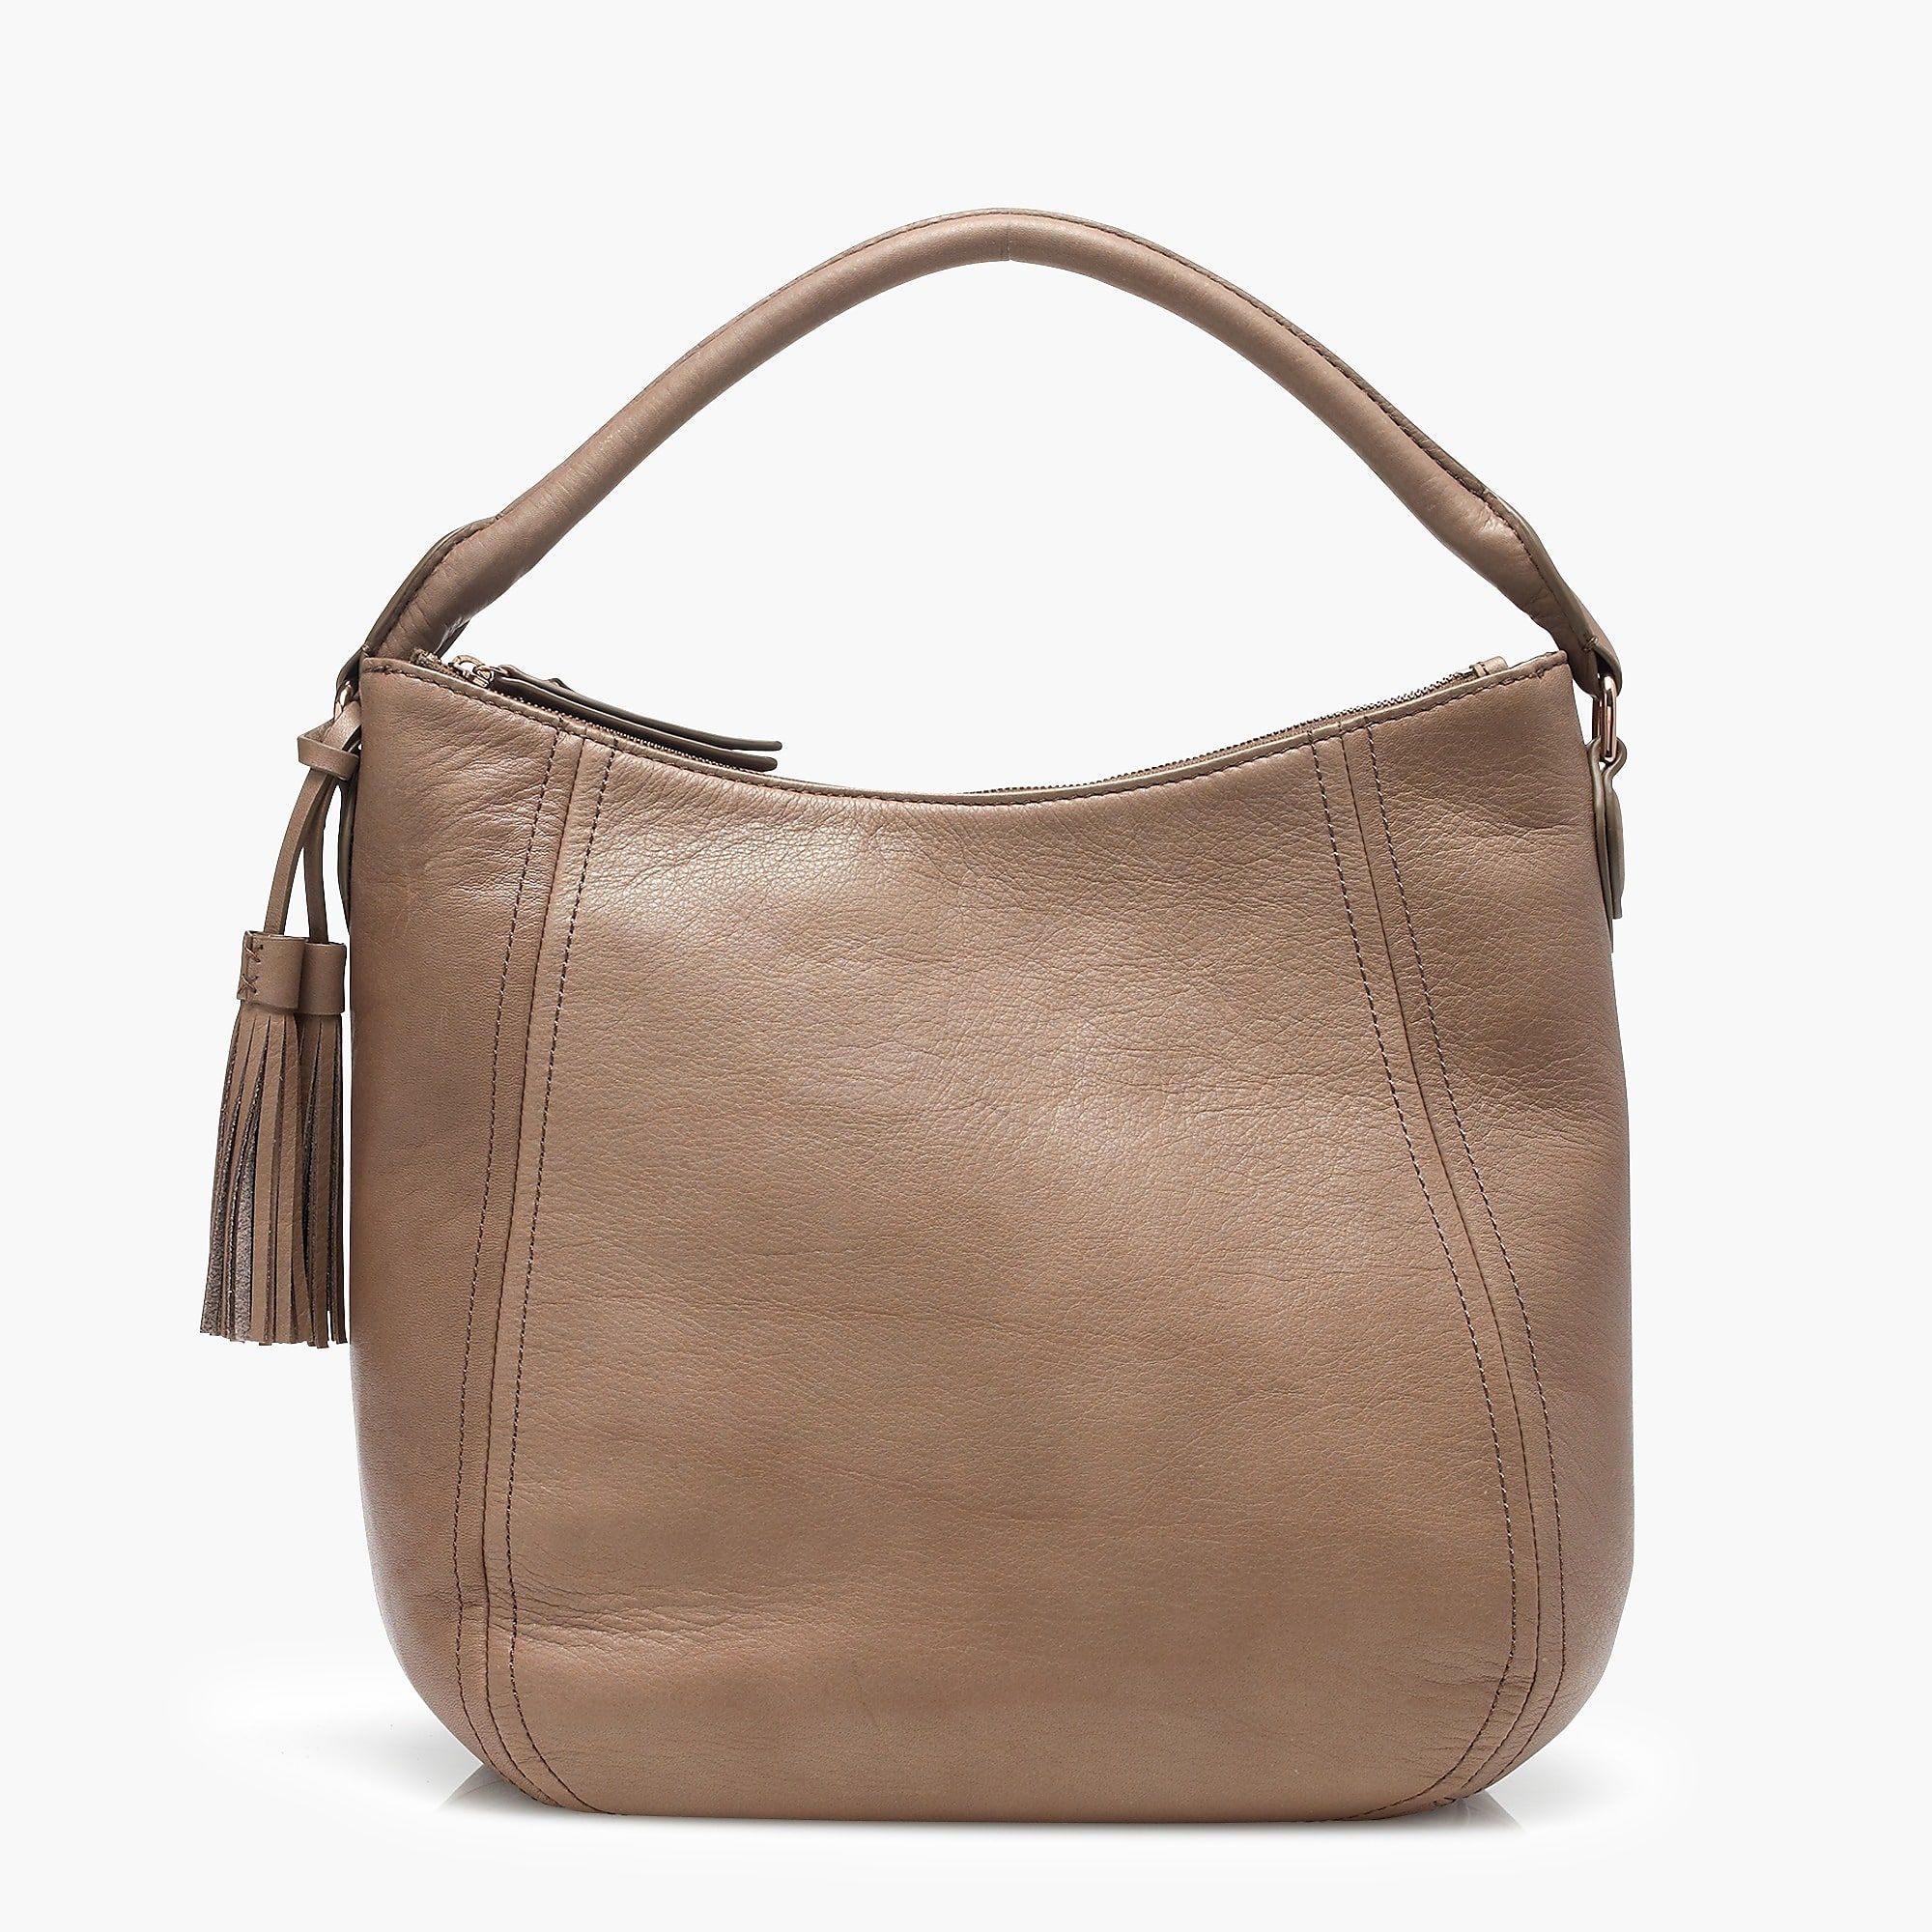 A Haul-it-all Hobo Bag With Natural Variations In The